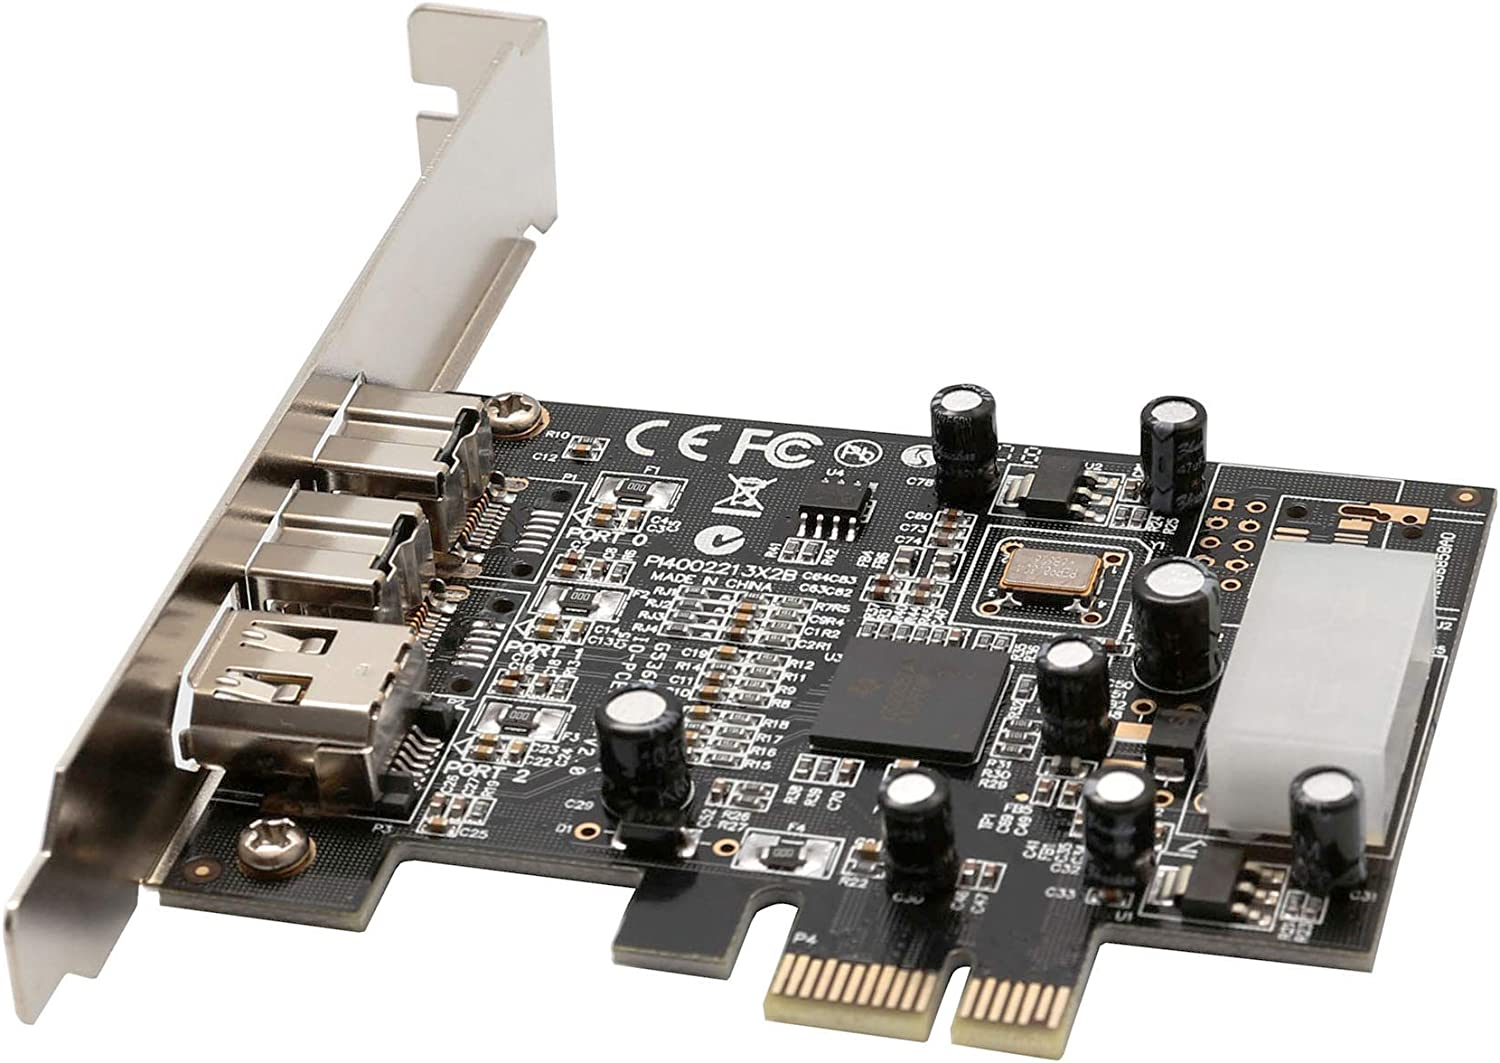 Syba SY-PEX30016 3 Port IEEE 1394 Firewire 1394B /& 1394A PCIe 1.1 x1 Card TI XIO2213B Chipset Requires Legacy Driver for Windows 8 10